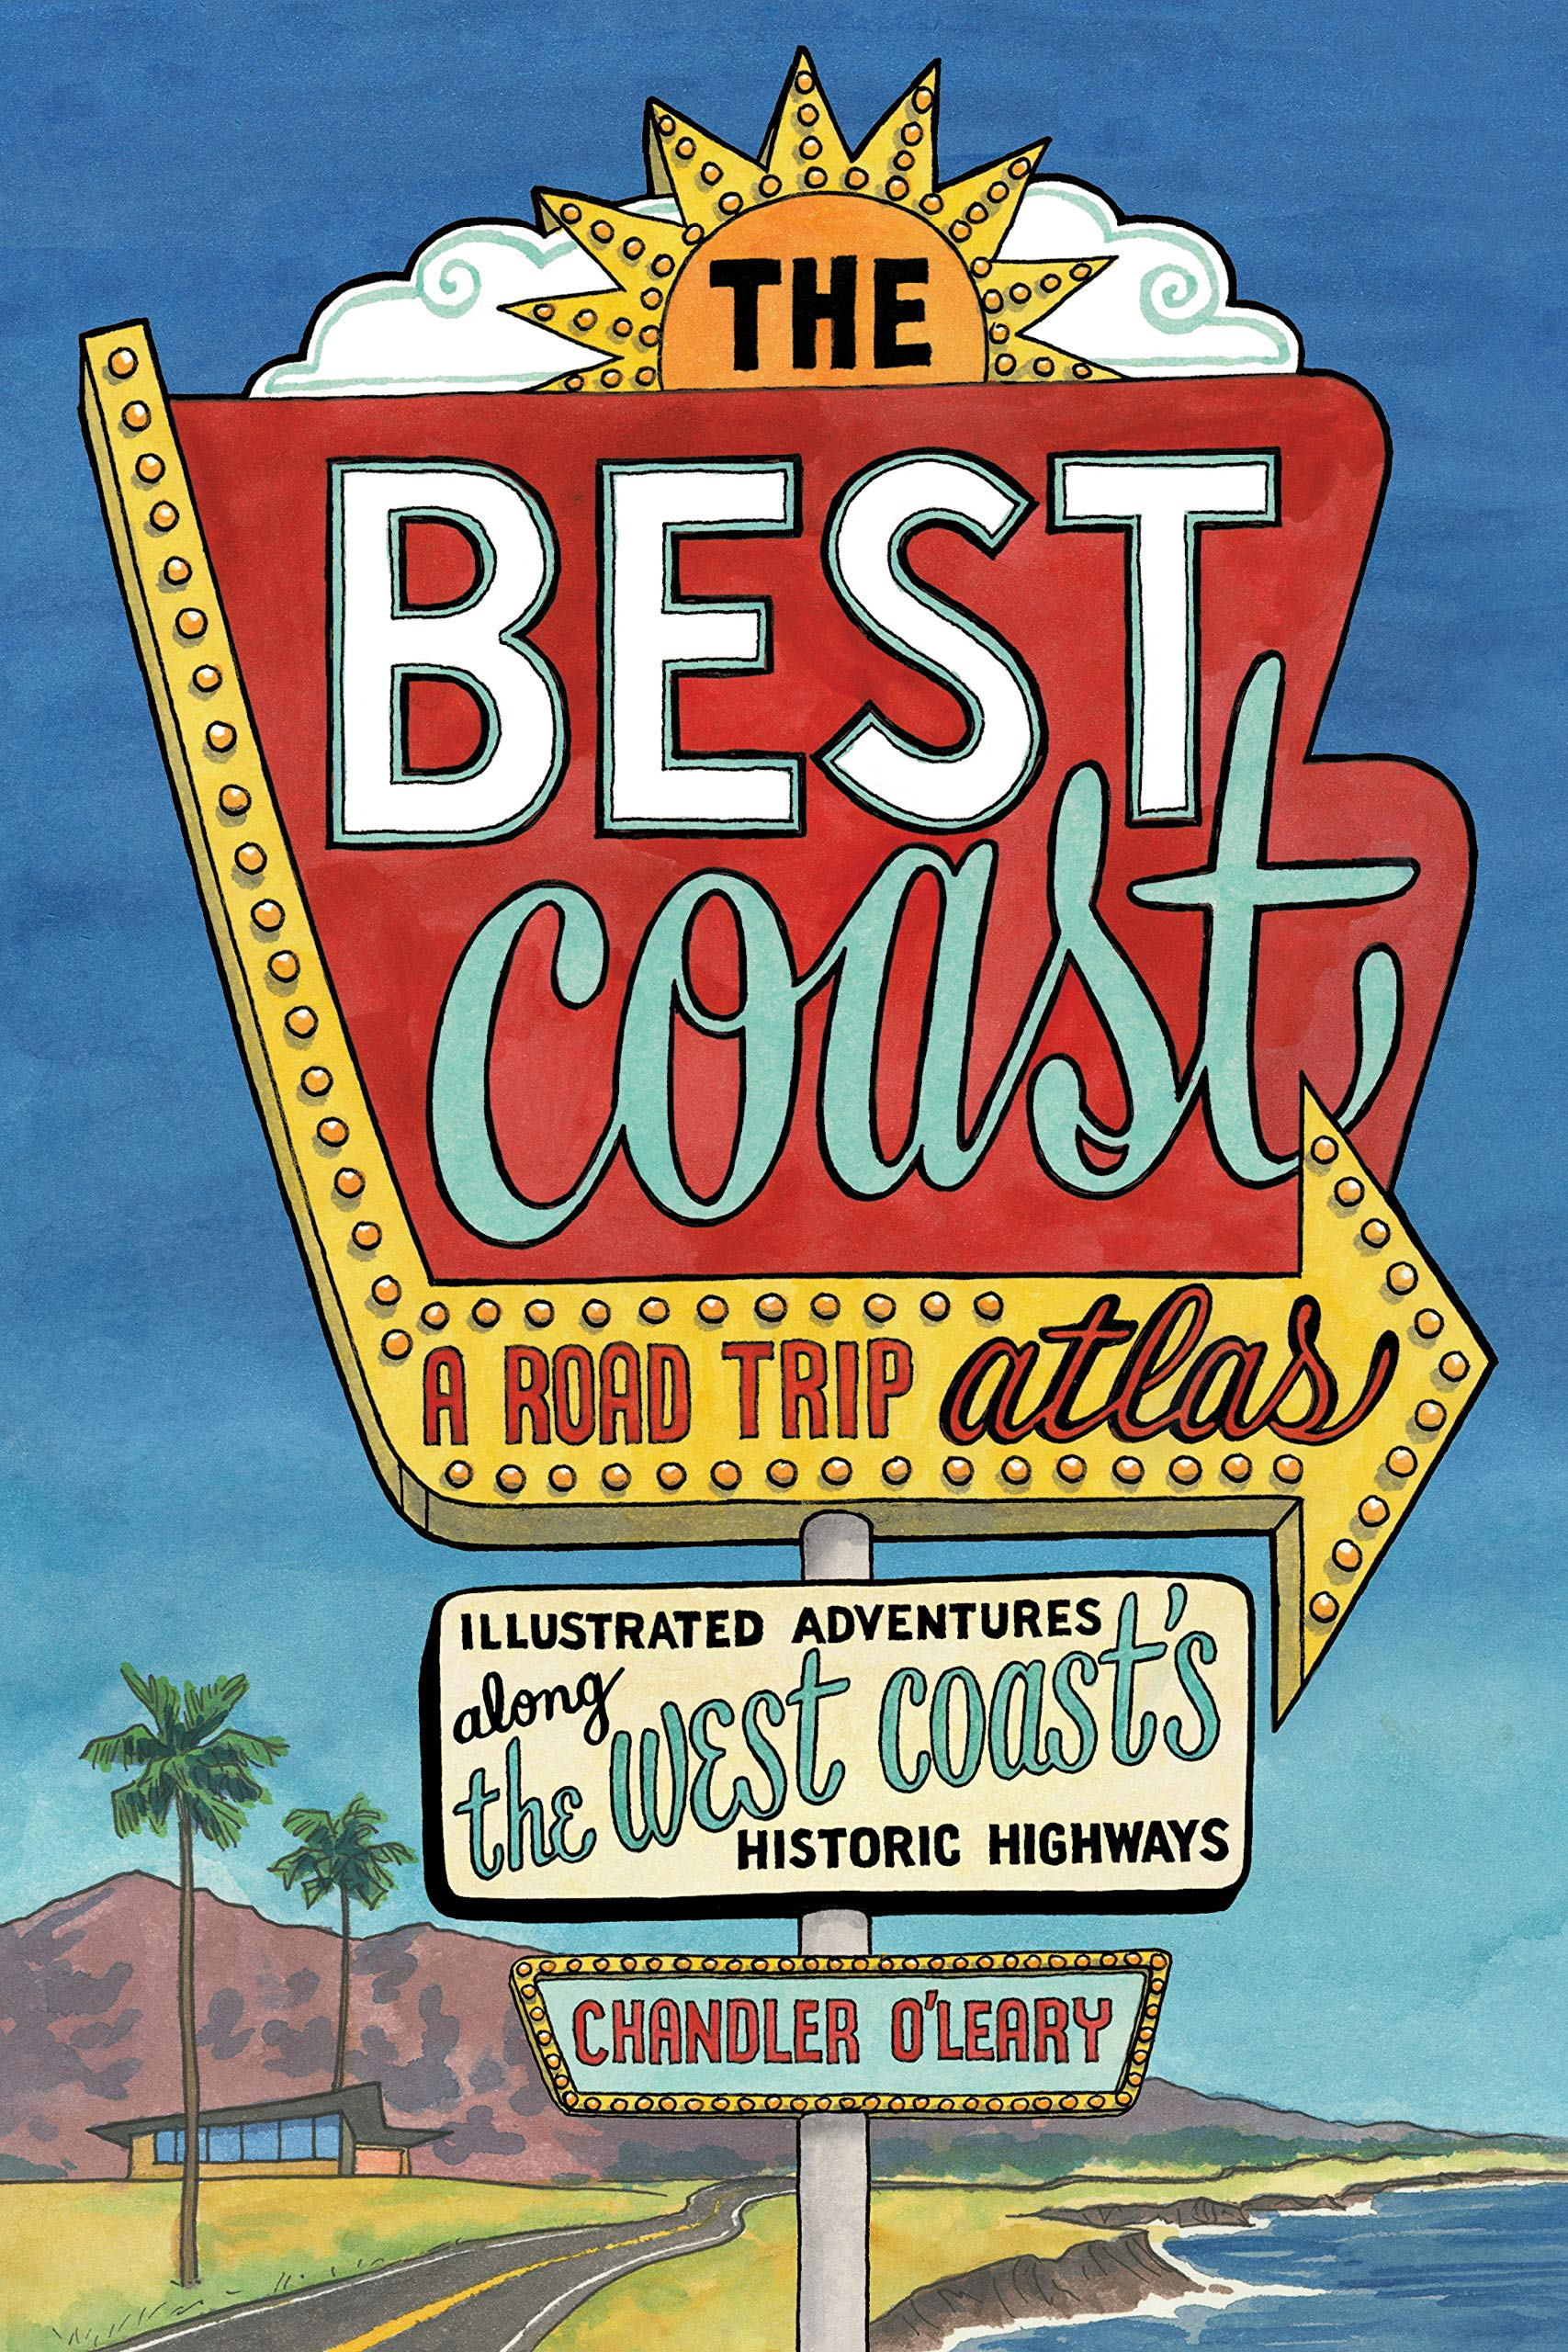 The Best Coast  A Road Trip Atlas  Illustrated Adventures Along The West Coast's Historic Highways